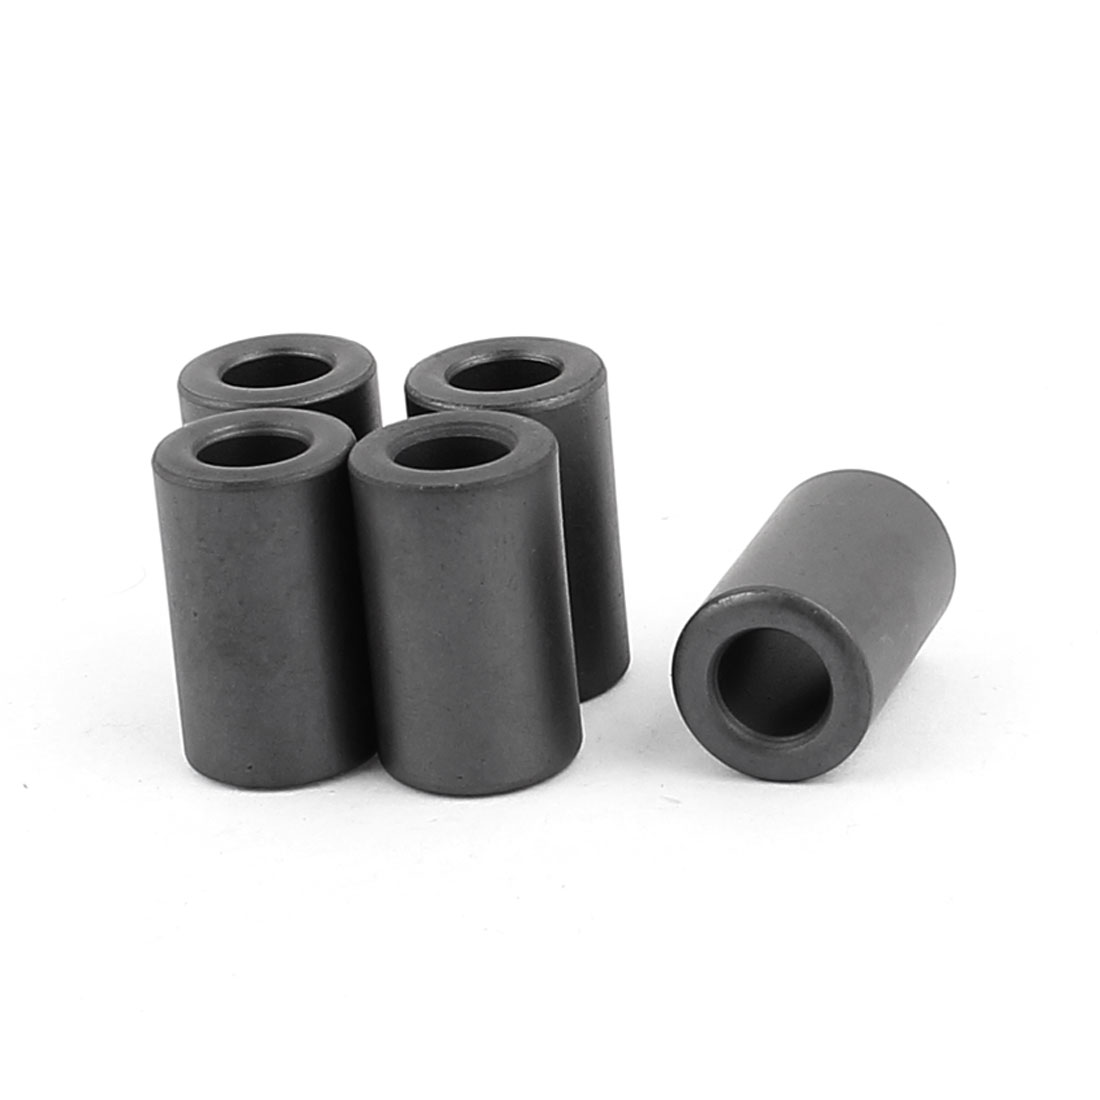 5Pcs M6 x 20 x 12mm Ferrite Bead Toroid Cores for Filters Coils